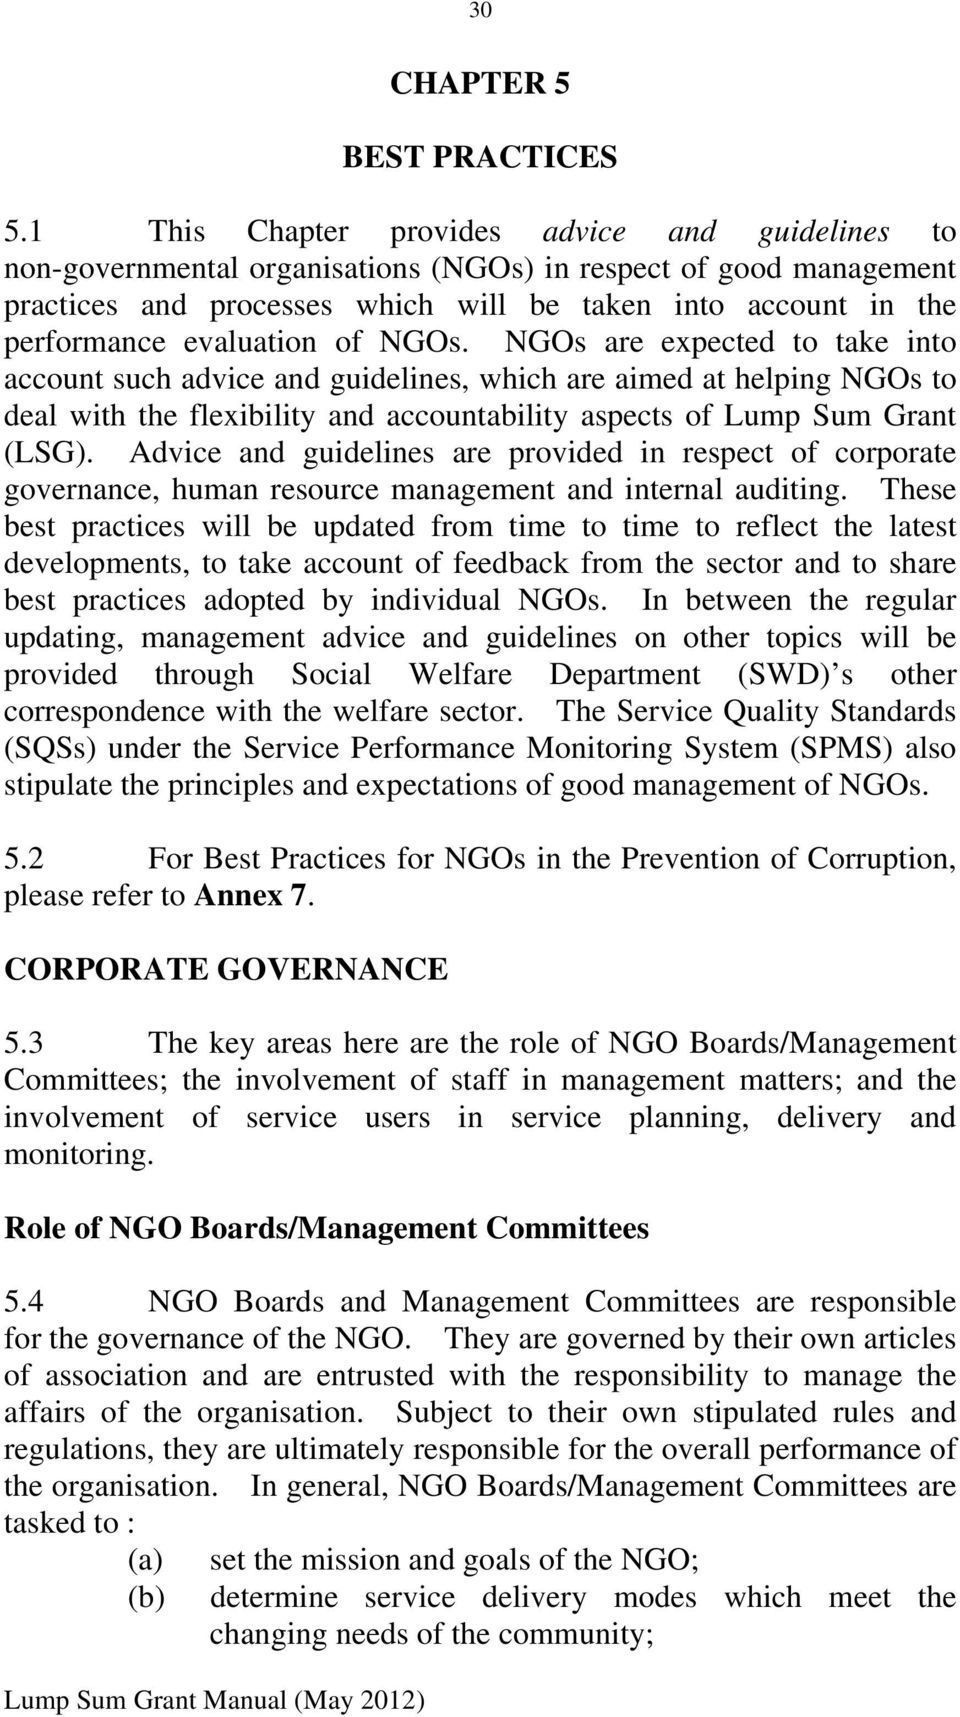 evaluation of NGOs. NGOs are expected to take into account such advice and guidelines, which are aimed at helping NGOs to deal with the flexibility and accountability aspects of Lump Sum Grant (LSG).